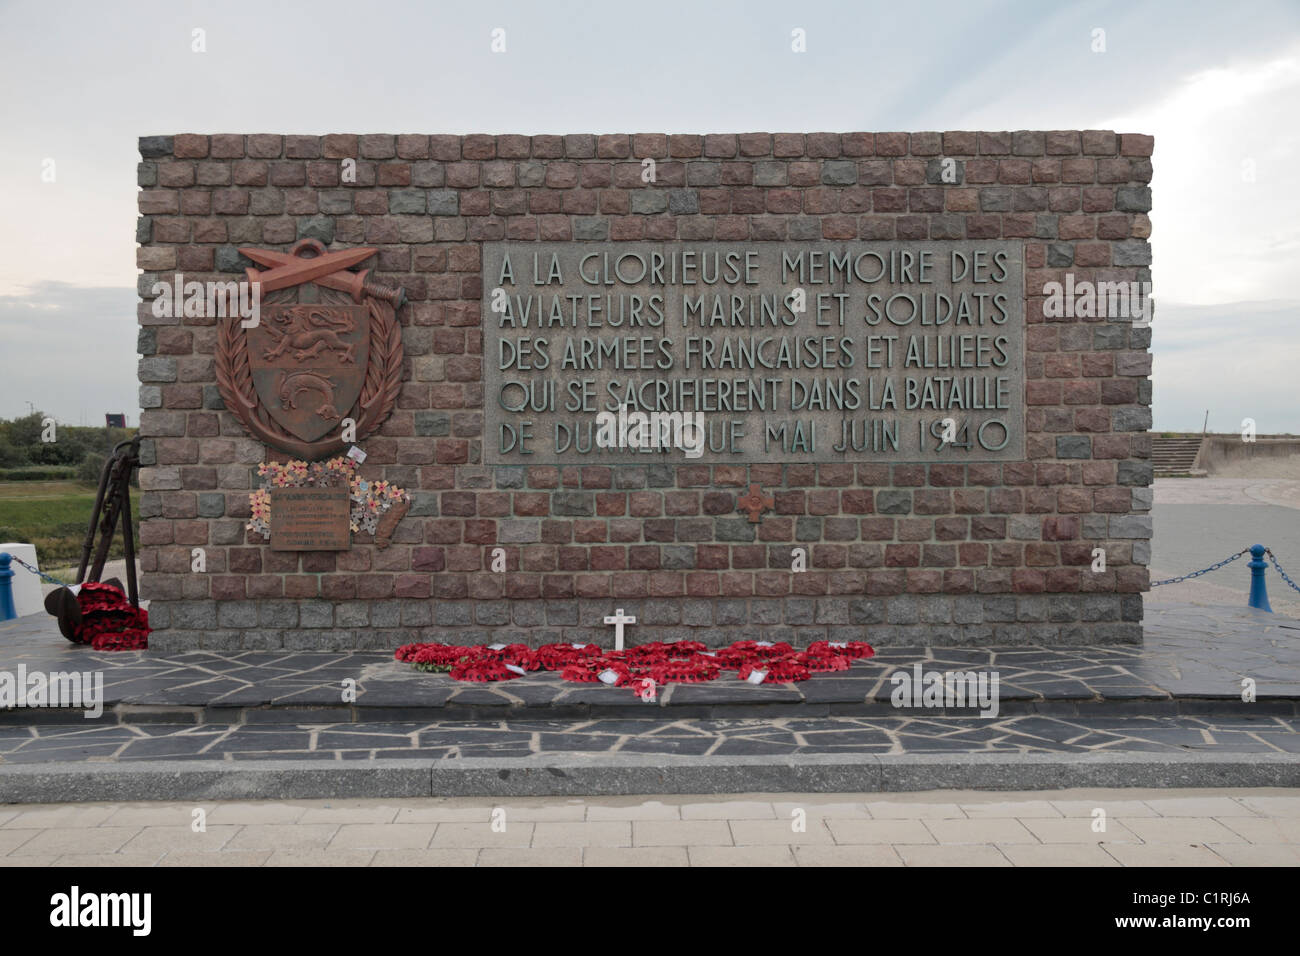 Memorial to the Battle of Dunkirk, the Allied evacuation from the beaches of Dunkerque in 1940, Dunkerque (Dunkirk), - Stock Image